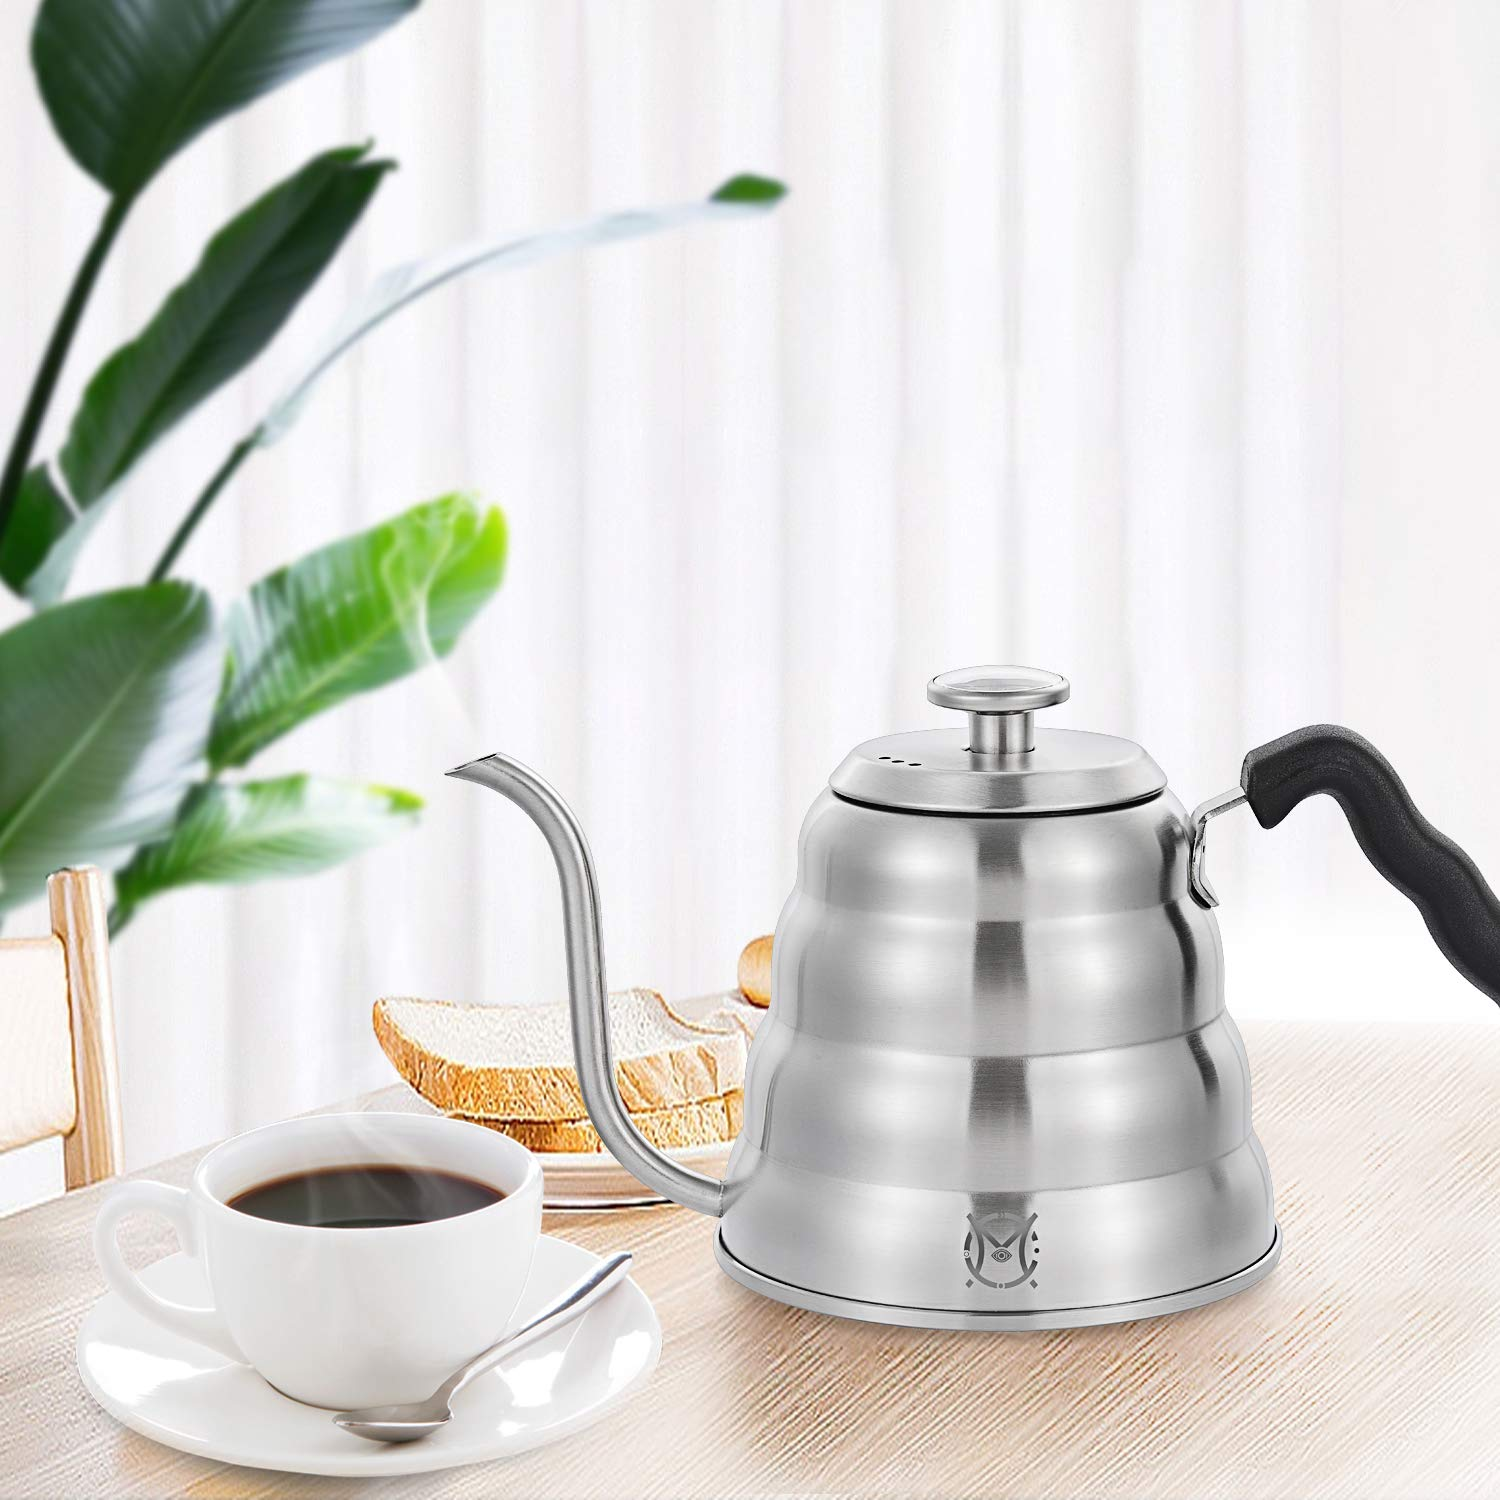 Magicafé Pour Over Coffee Kettle - Stainless Steel Gooseneck with Built In Thermometer for Exact Temperature - 40OZ 1.2 Liter 1200ML by MAGICAFÉ (Image #7)